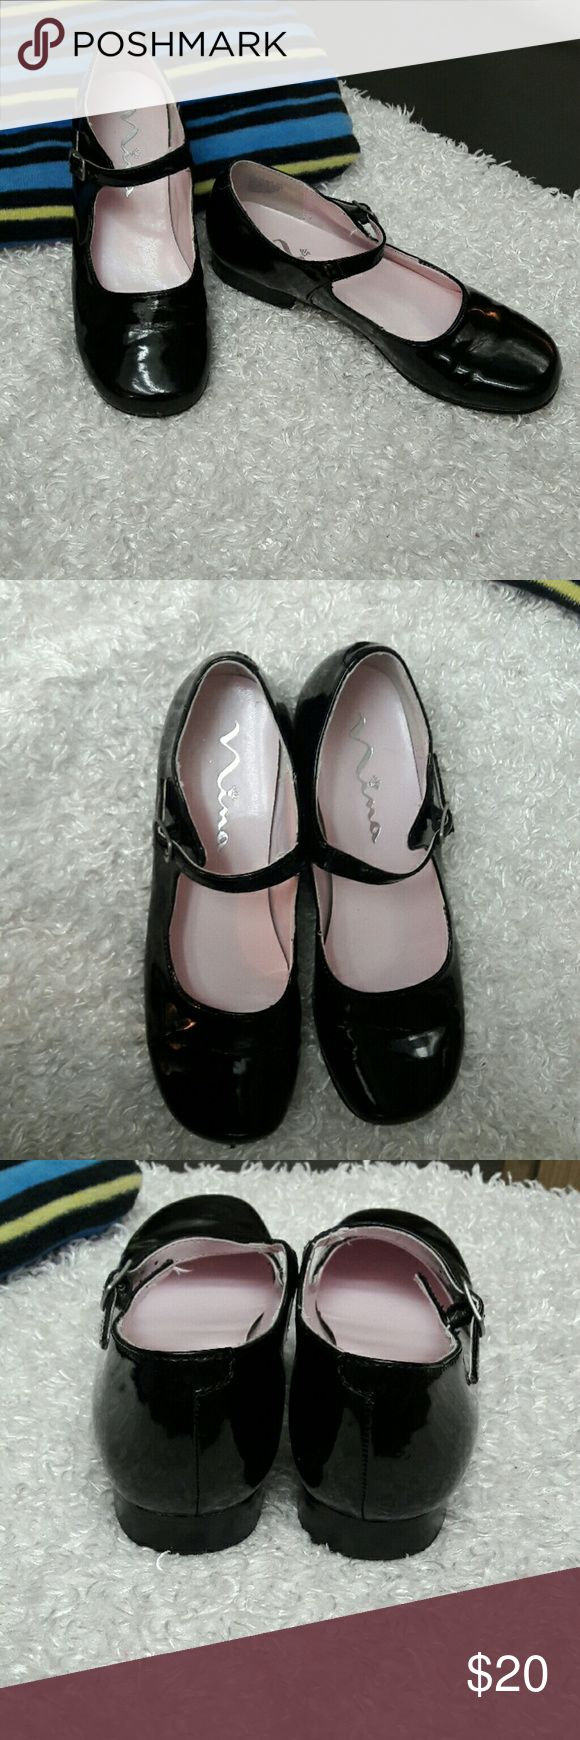 Nina Girls Patient Leather Mary Jane Shoes Brand Nina Size Girls 1Narrow brand tends to run wide Bonnett Black Patient Leather Mary Jane Dressy Shoes. This style defines little girls fashion from decade to decade. Adjustablevstrap buckle.  These are like new but have a tiny flaw at toe tip see Picture more on underneath of toe so not noticeable while wearing unless you look hard.  Clean and otherwise like new worn once.  Bundles available with a 20% discounts Offers Welcome Nina Shoes Dress…